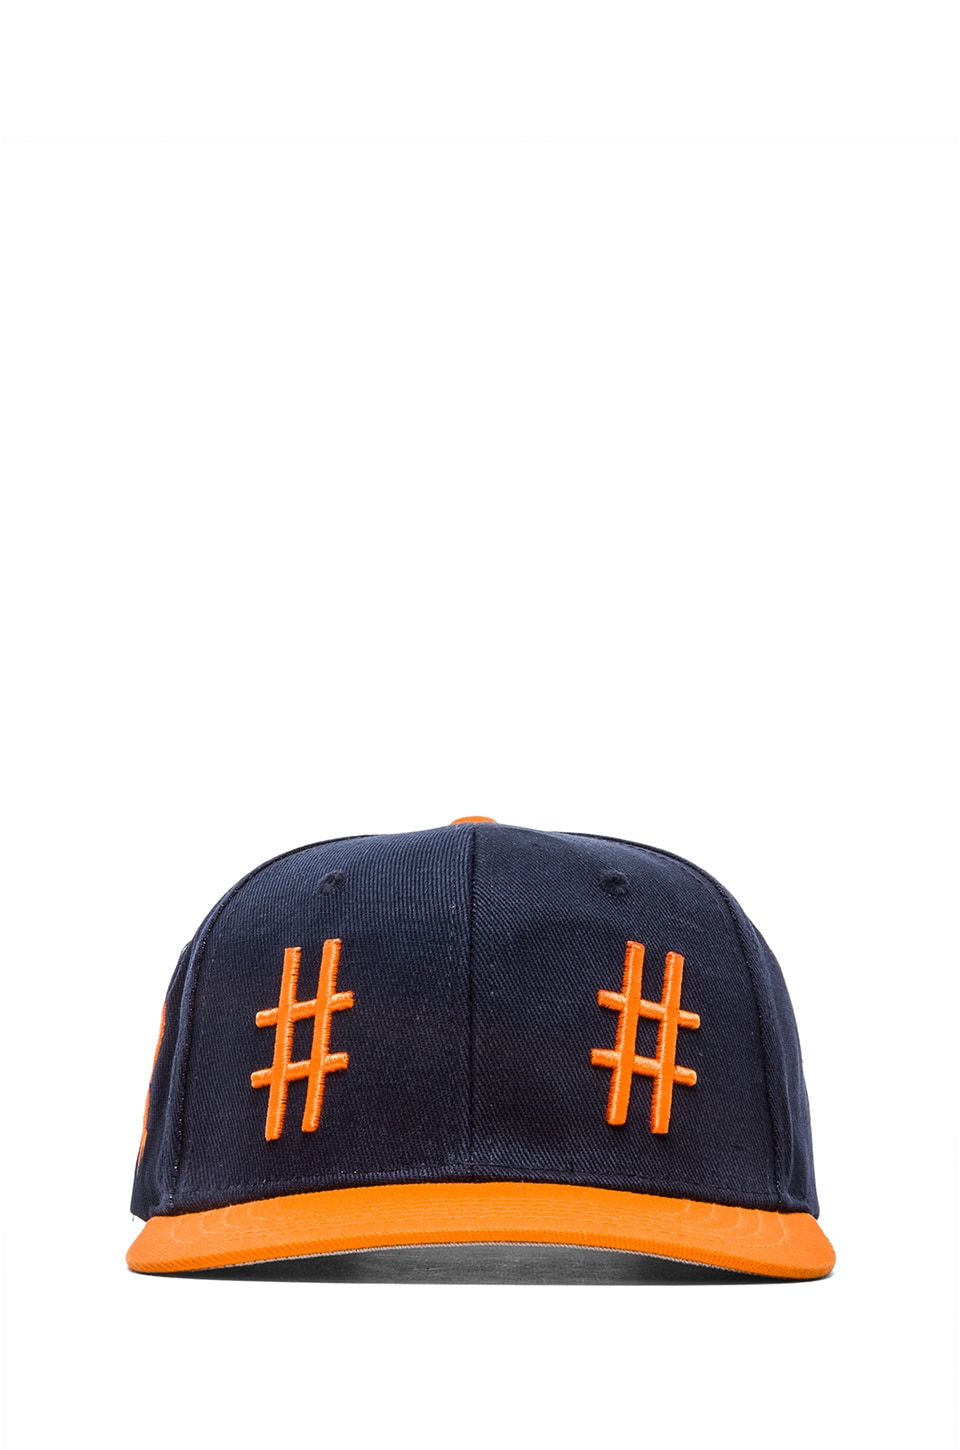 Been Trill Team Hat in Navy and Orange